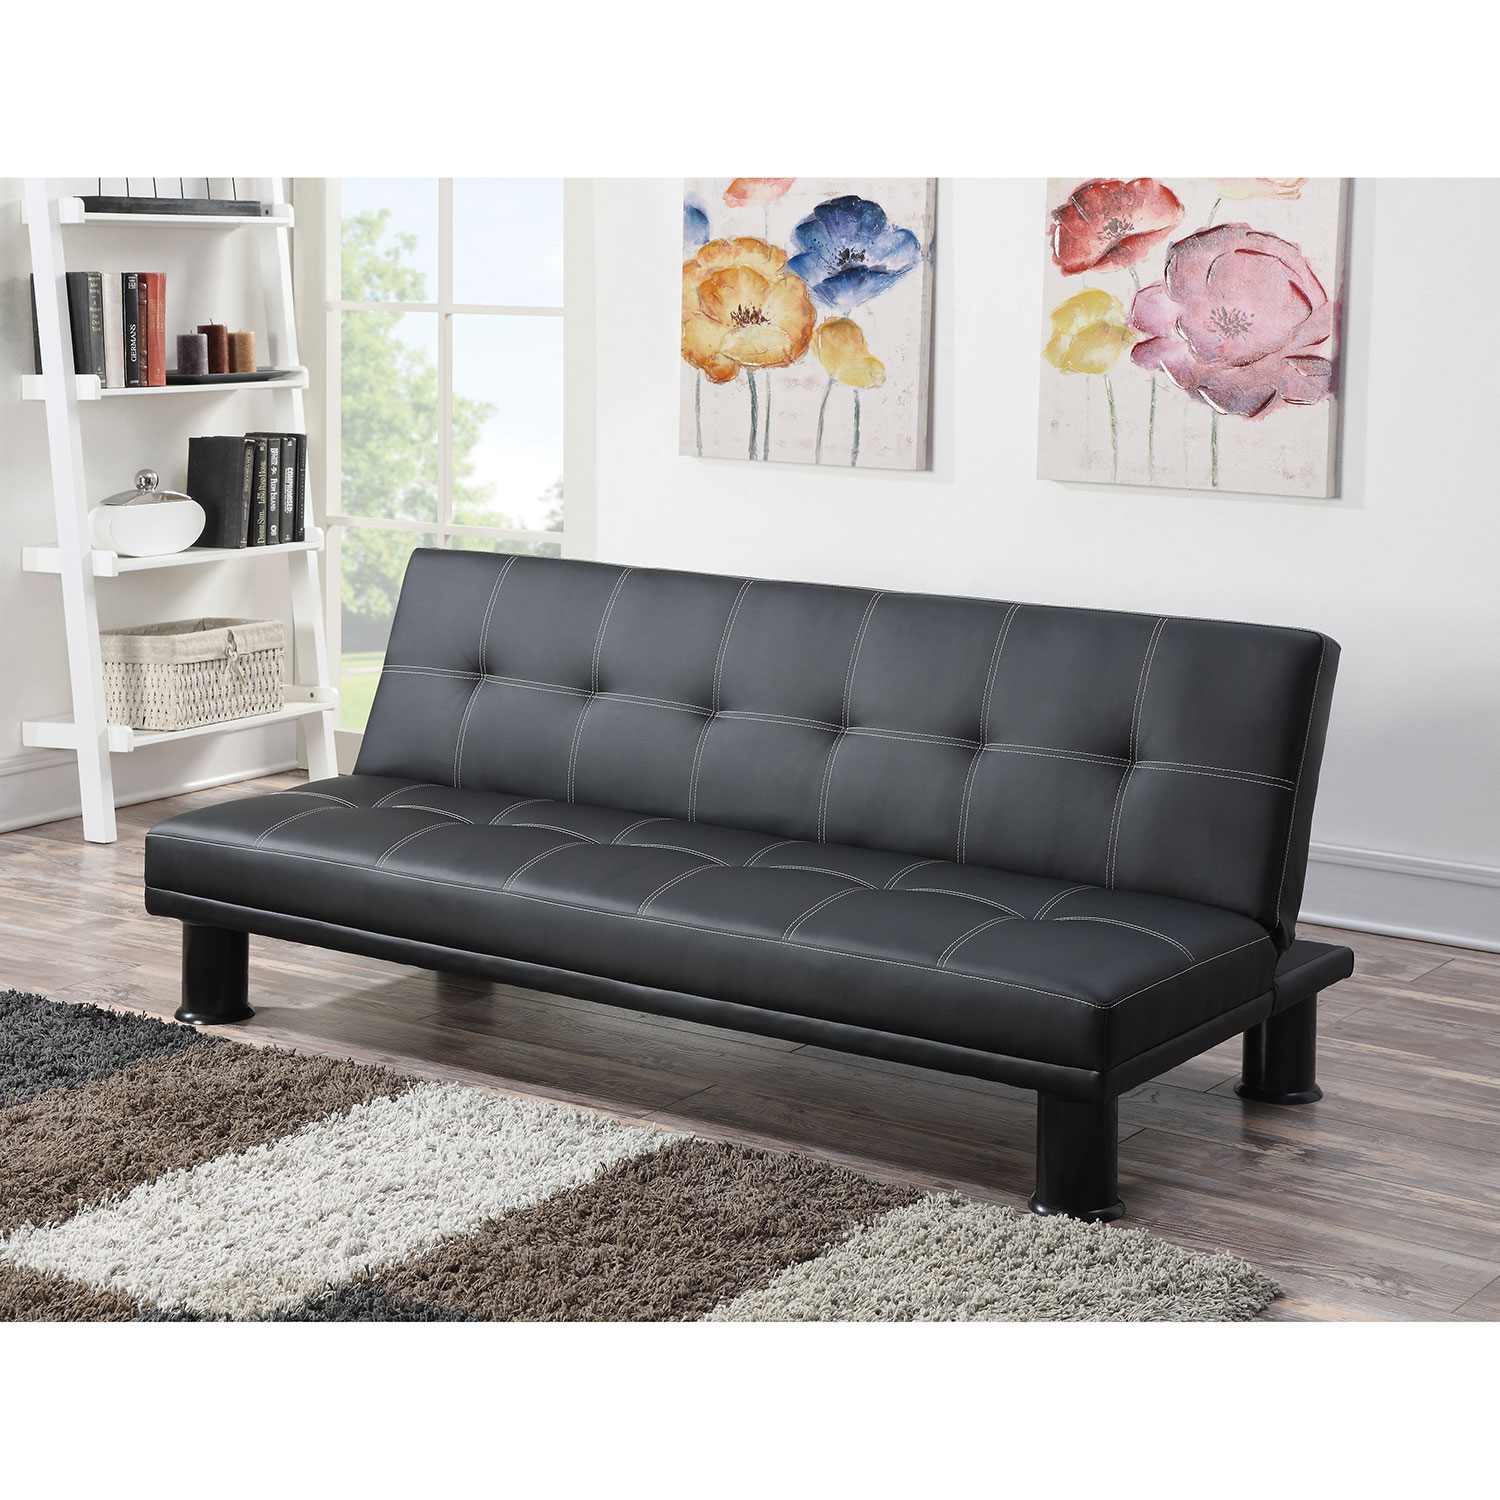 Image of: Small Klik Klak Futon